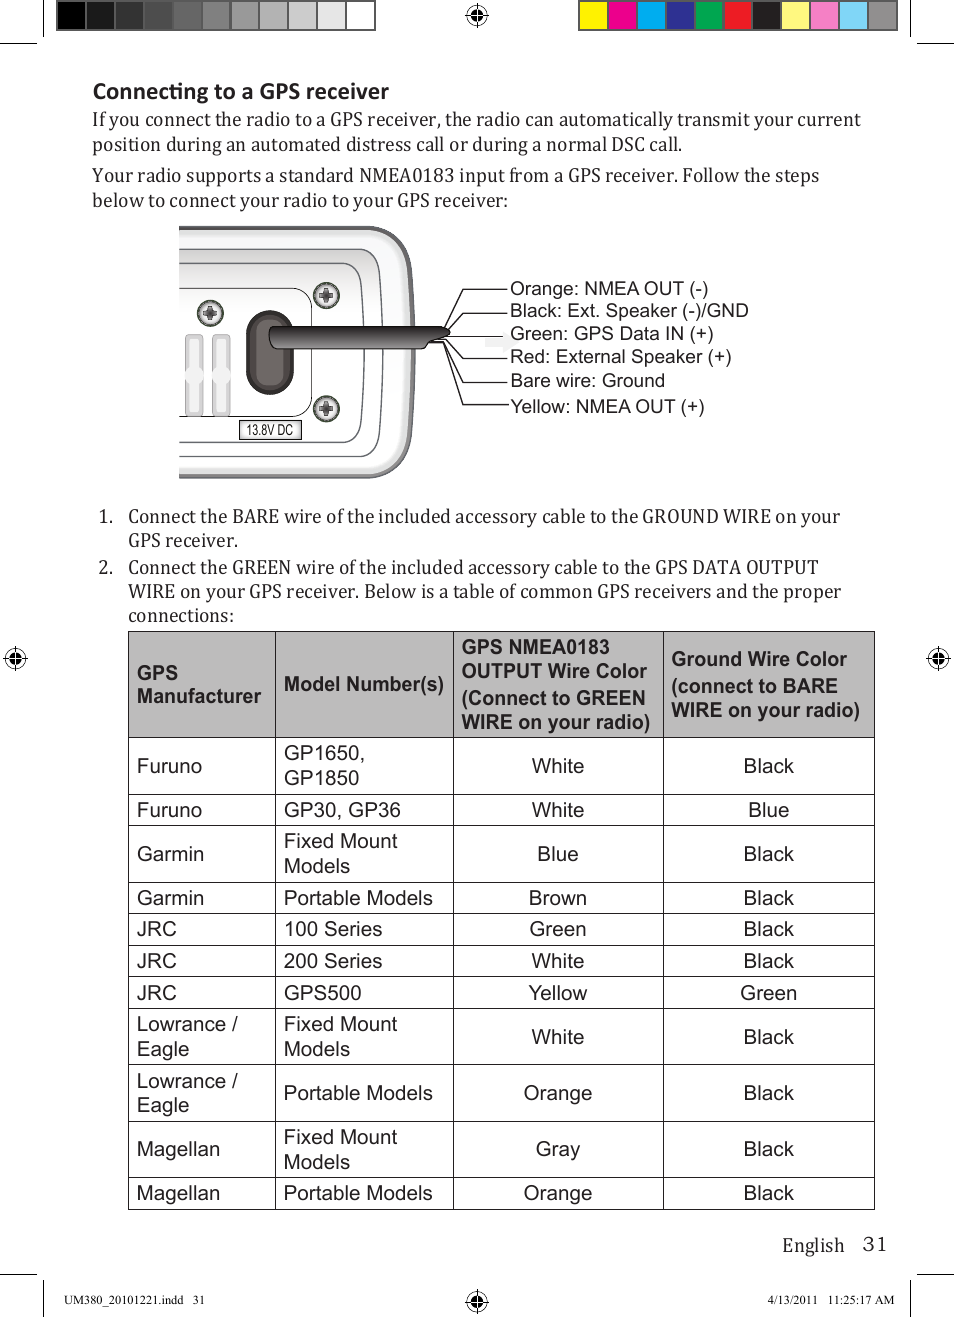 Uniden Solara Dsc Wiring Diagram Nmea Cable Marine Radio Manual 28 Images Connecting To A Gps Receiver Waterproof